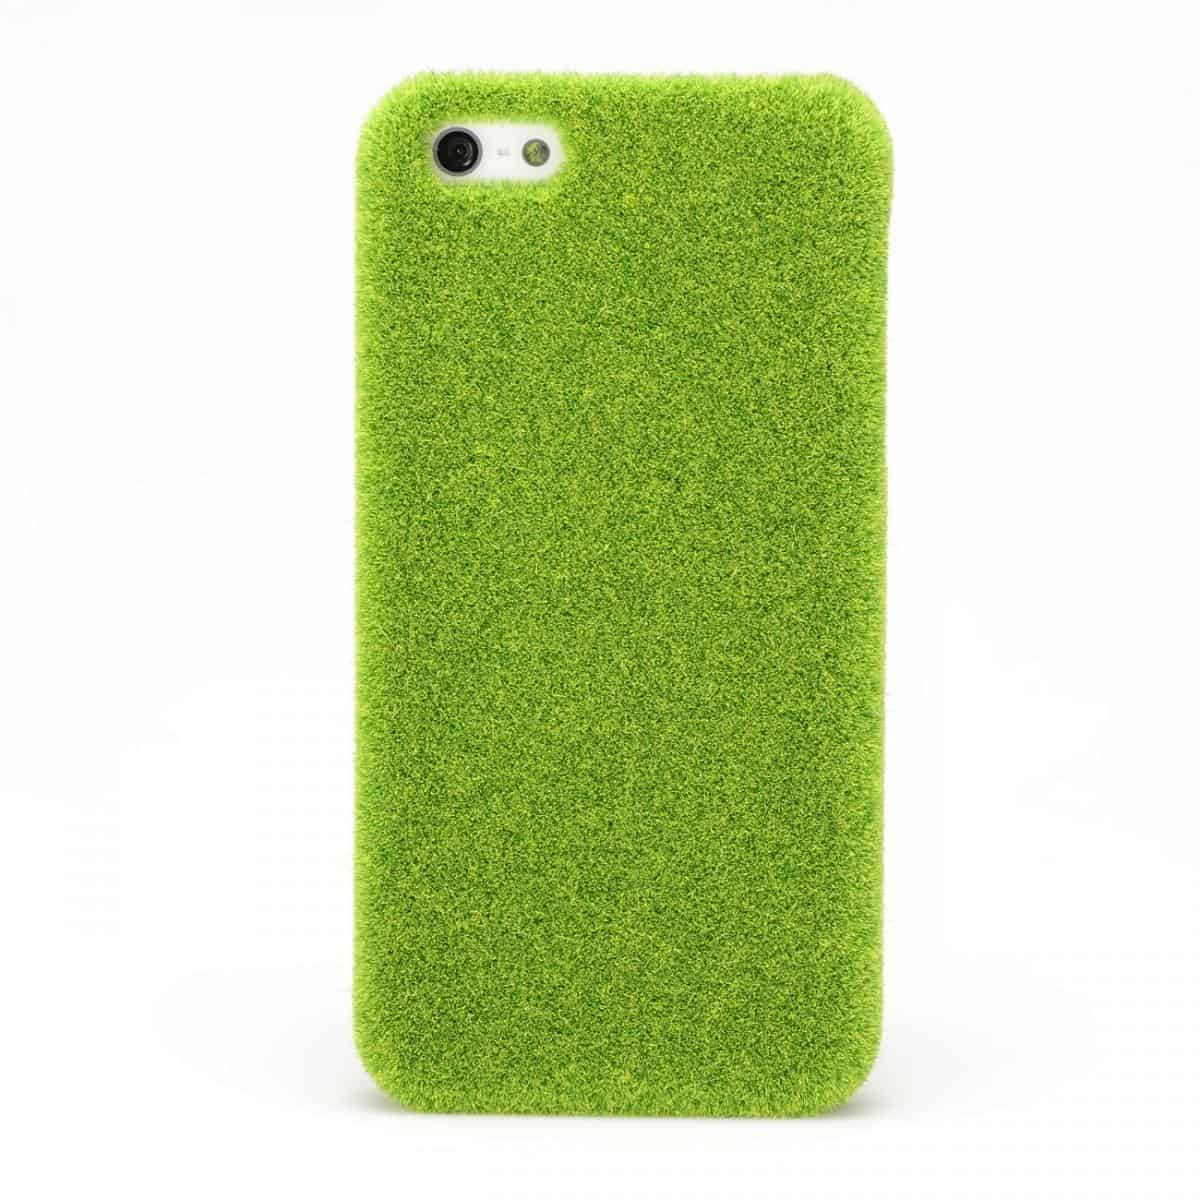 Shibaful Lush Lawn iPhone Cover Weird Novelty Item